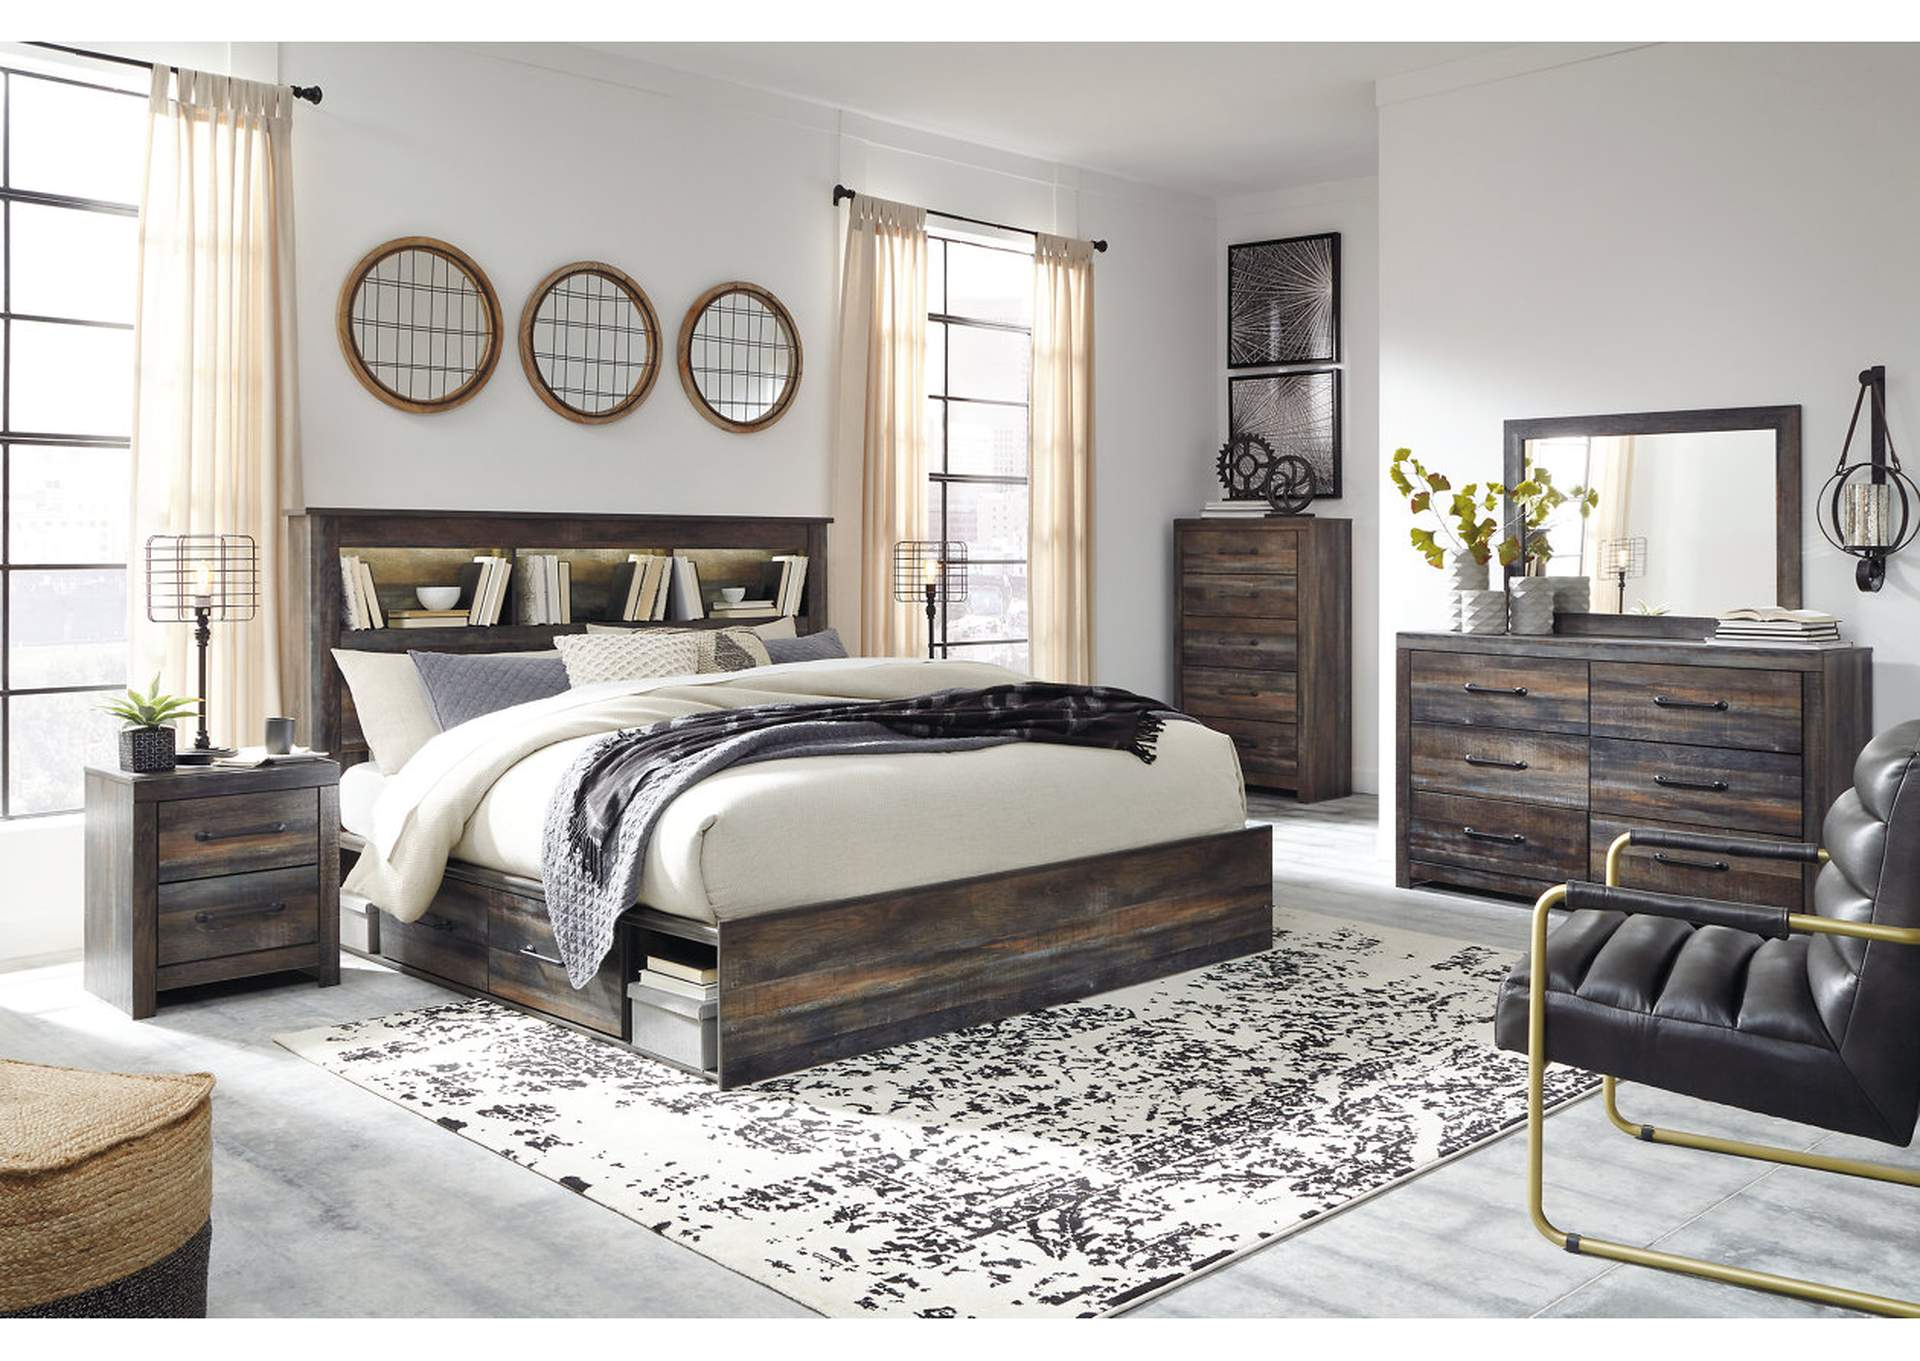 Drystan Bookcase King Side Storage Bed w/Dresser and Mirror,Signature Design By Ashley